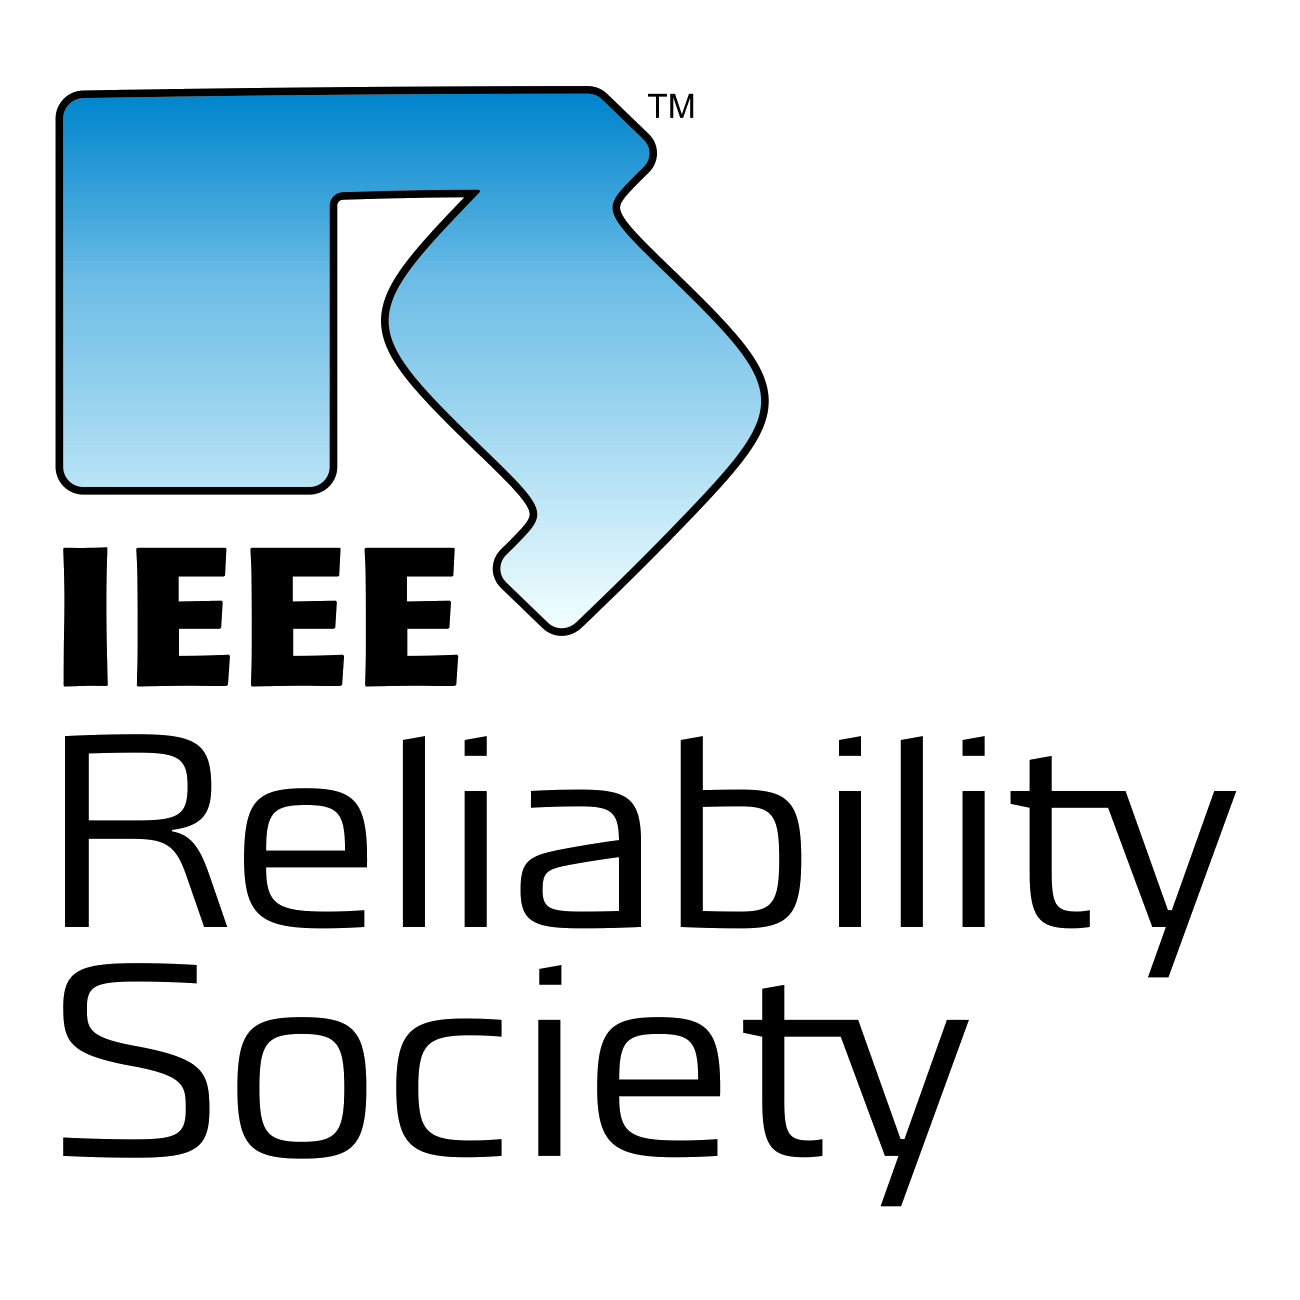 IEEE Reliability Society